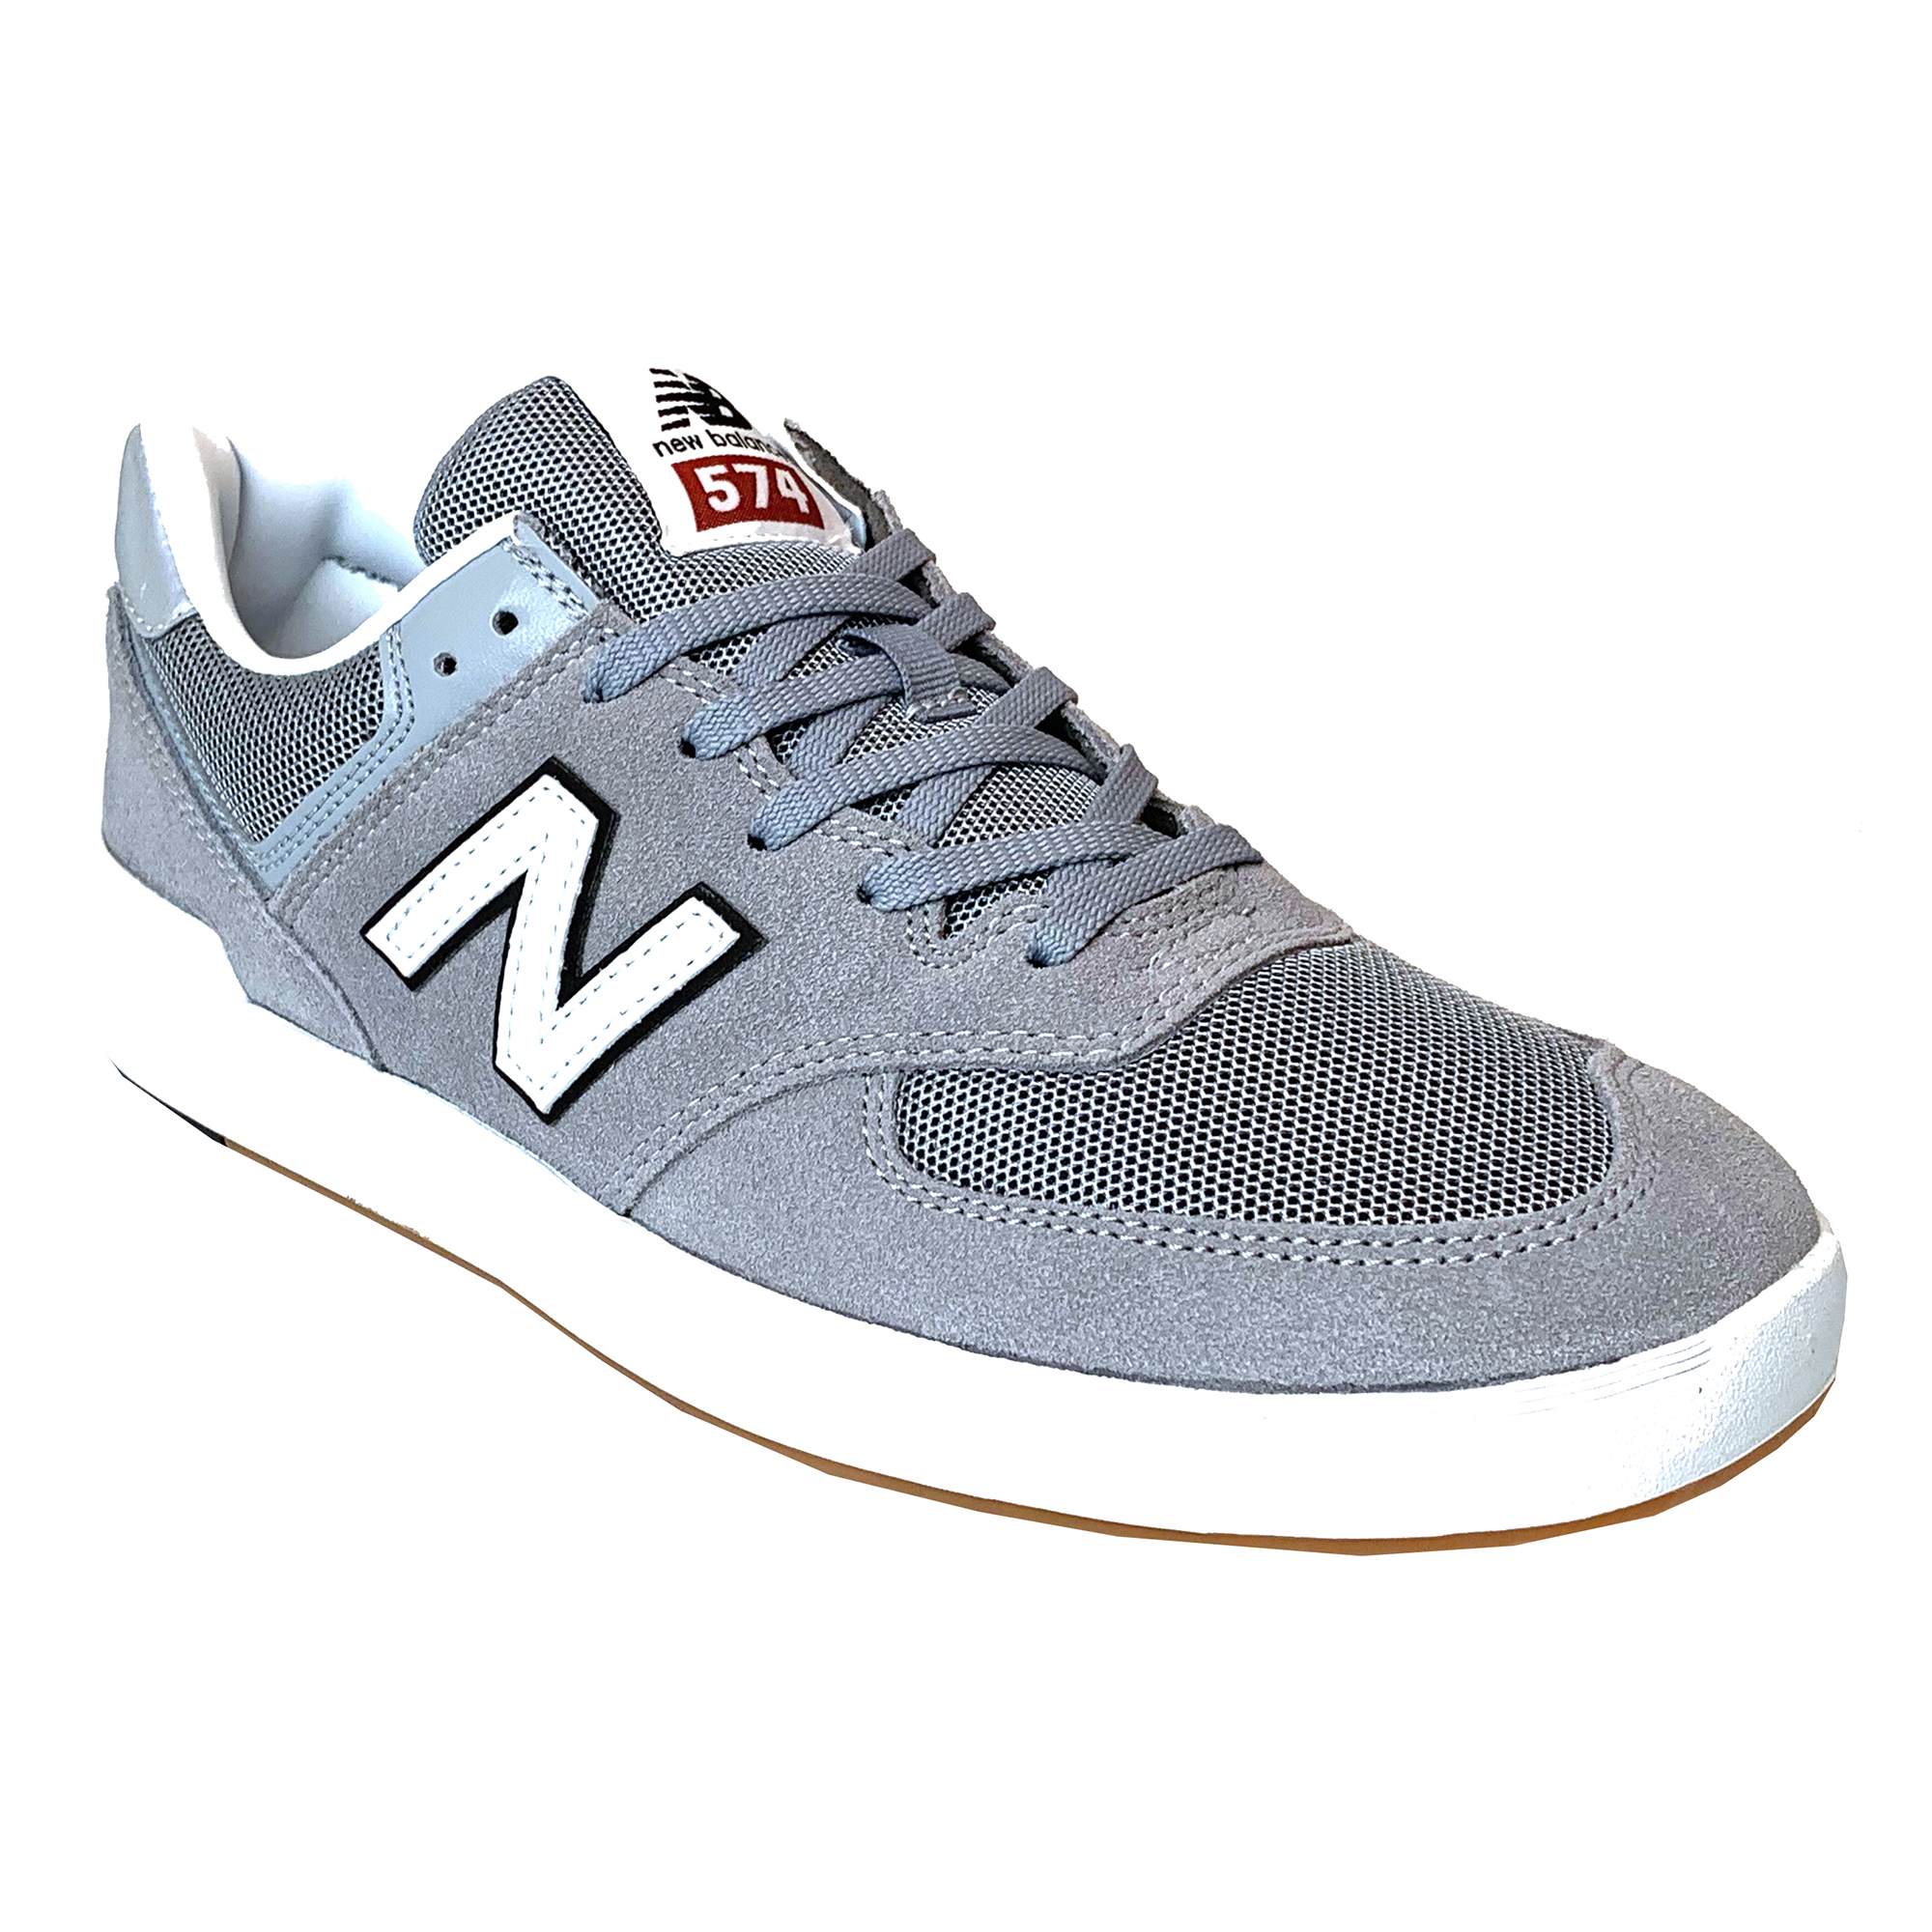 5379c768 Details about New Balance Men's 574 Court Shoes - Grey / White BNWT